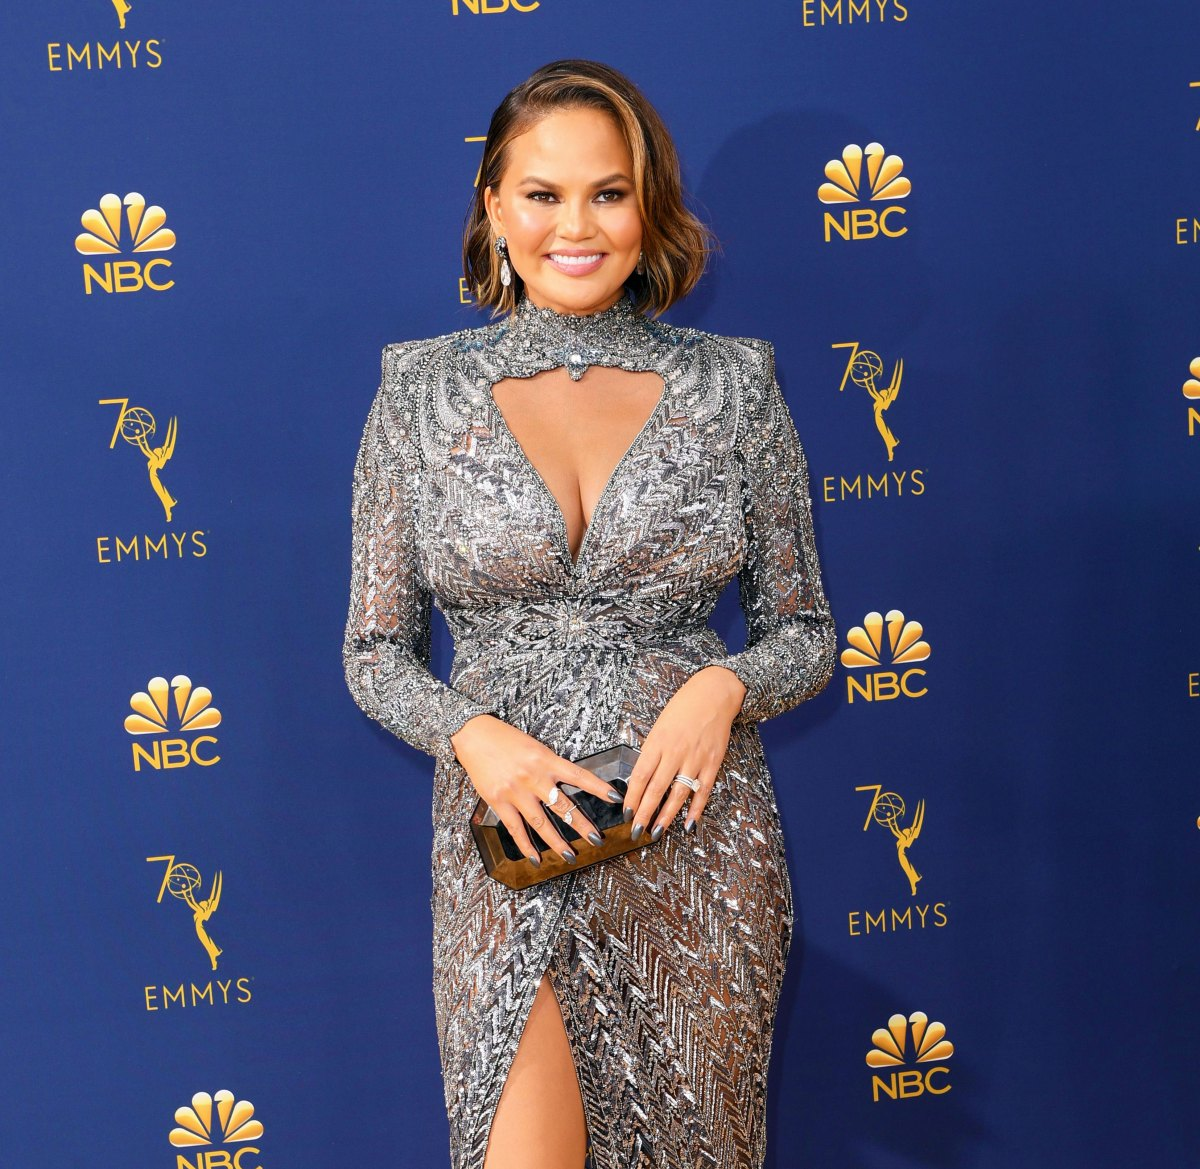 Chrissy Teigen's Baby Bump Album: See Pics From Her 3rd Pregnancy